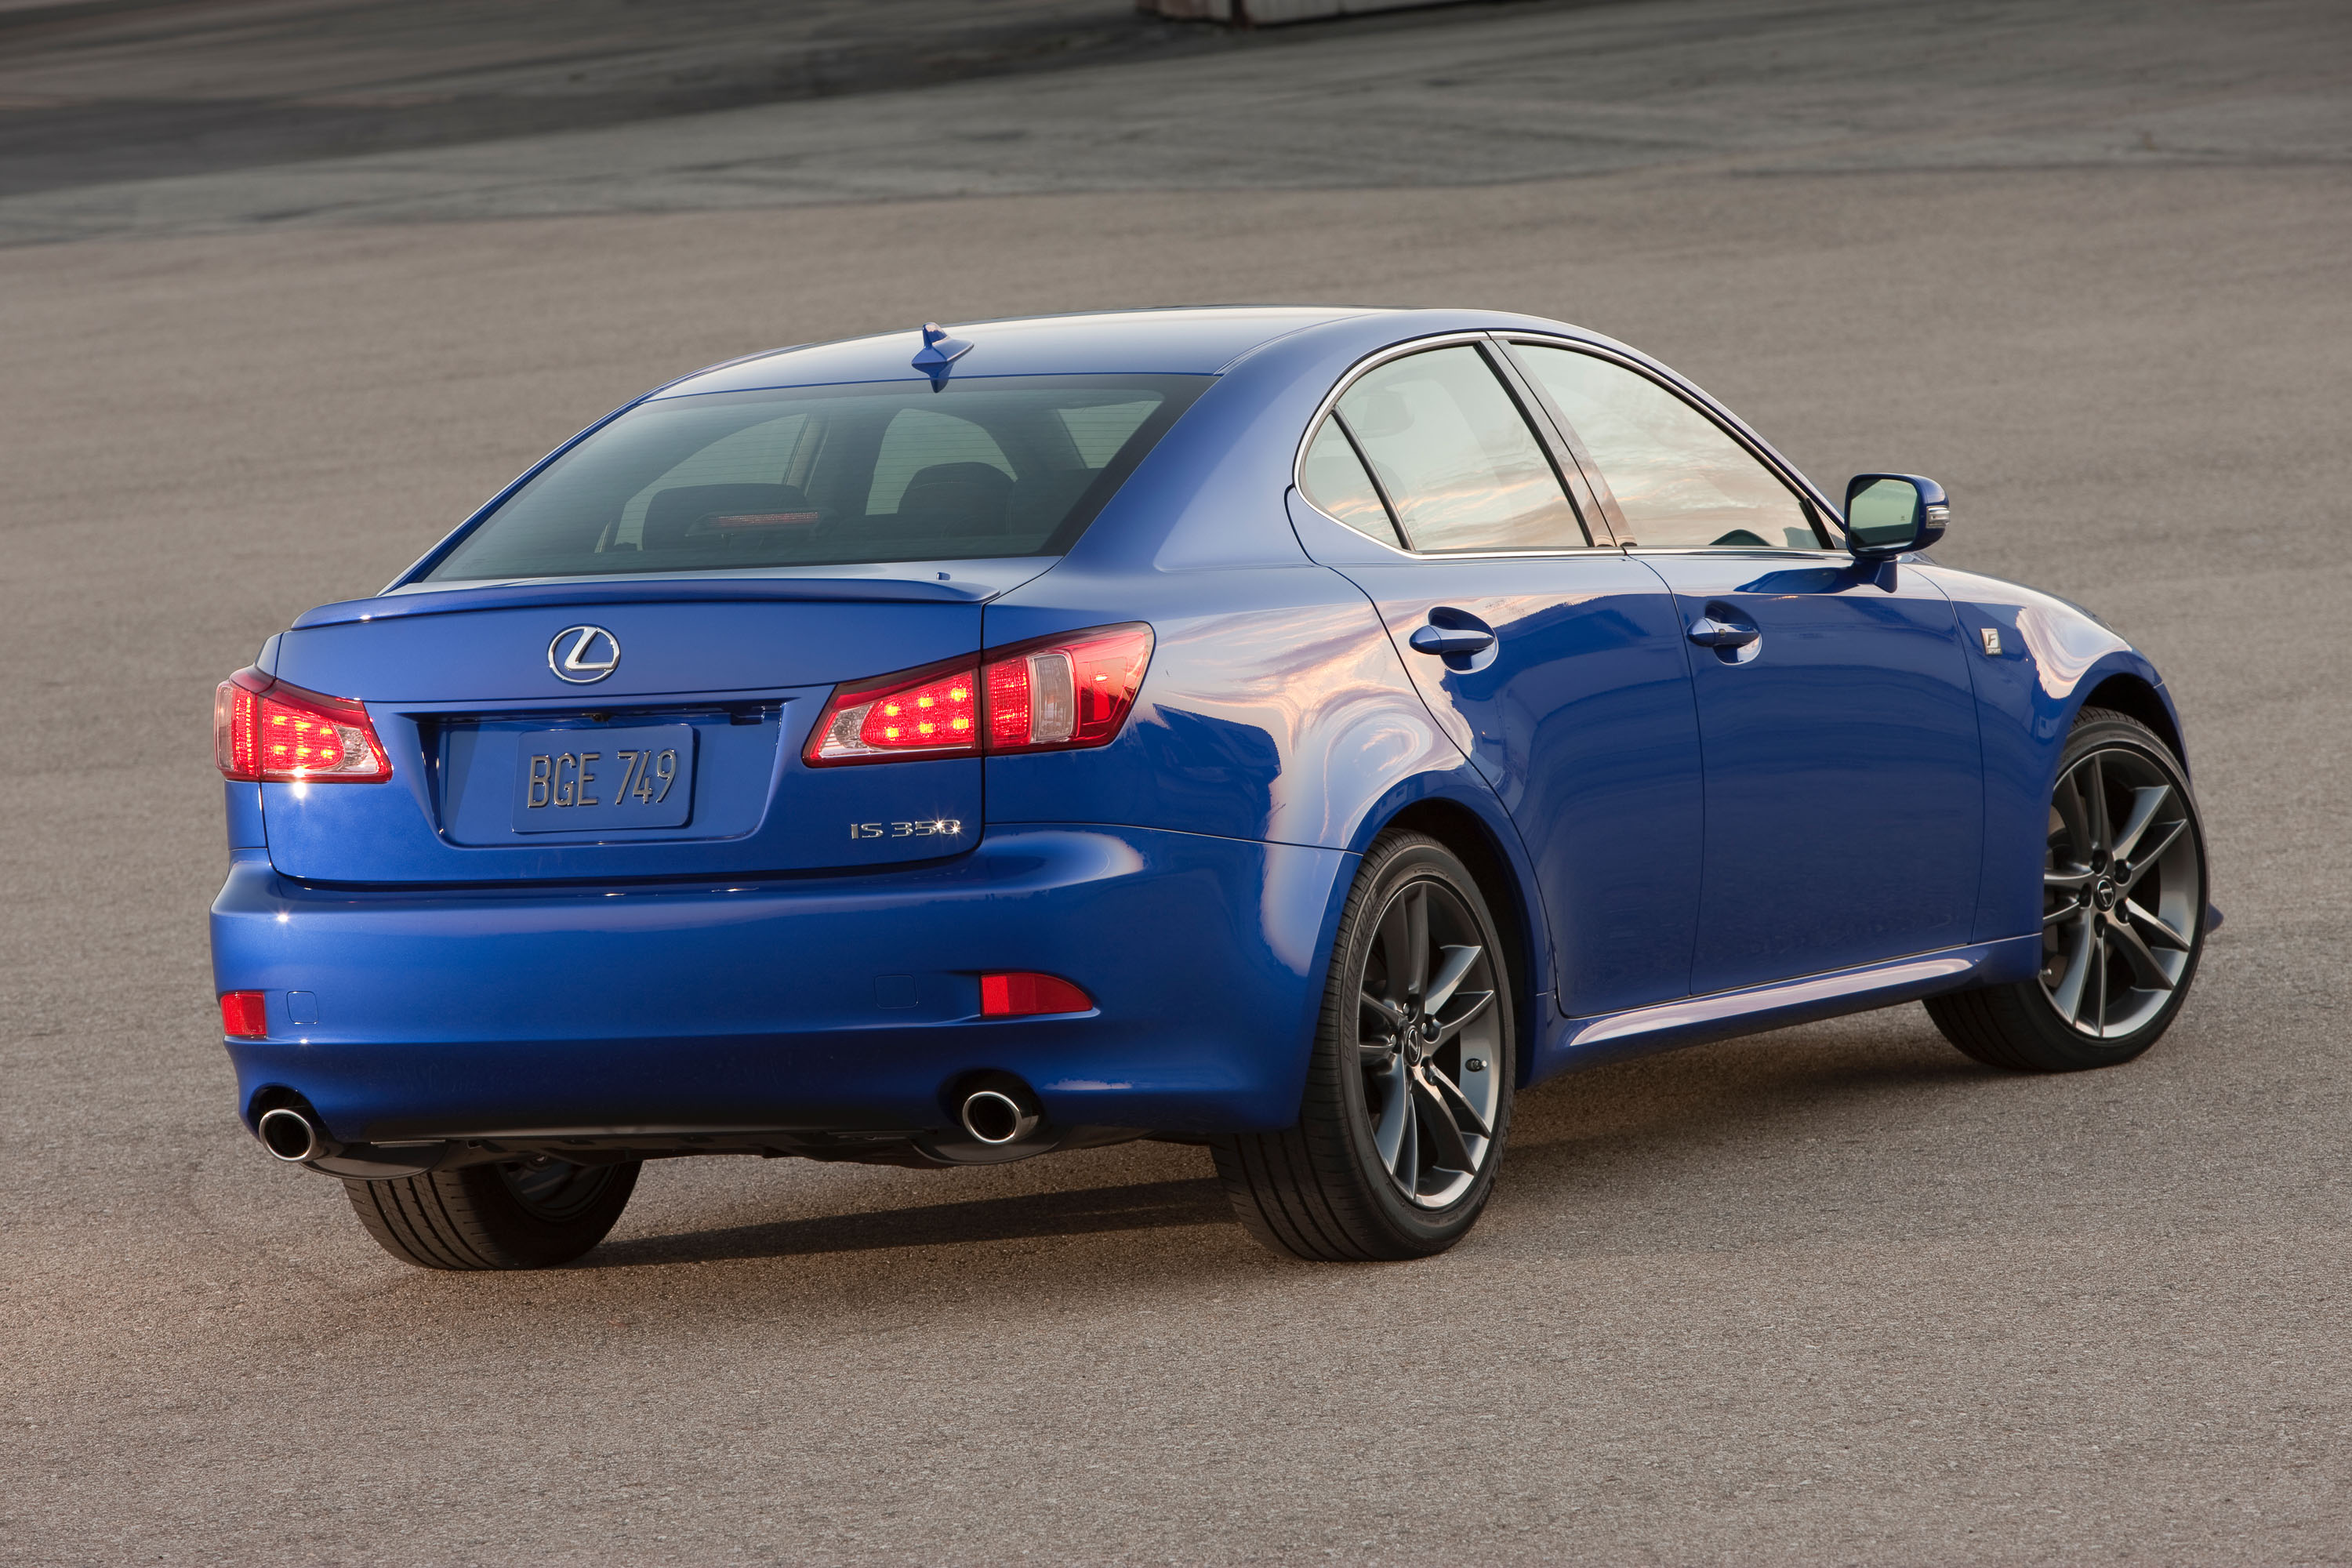 2011_Lexus_IS_350_F_Sport_003